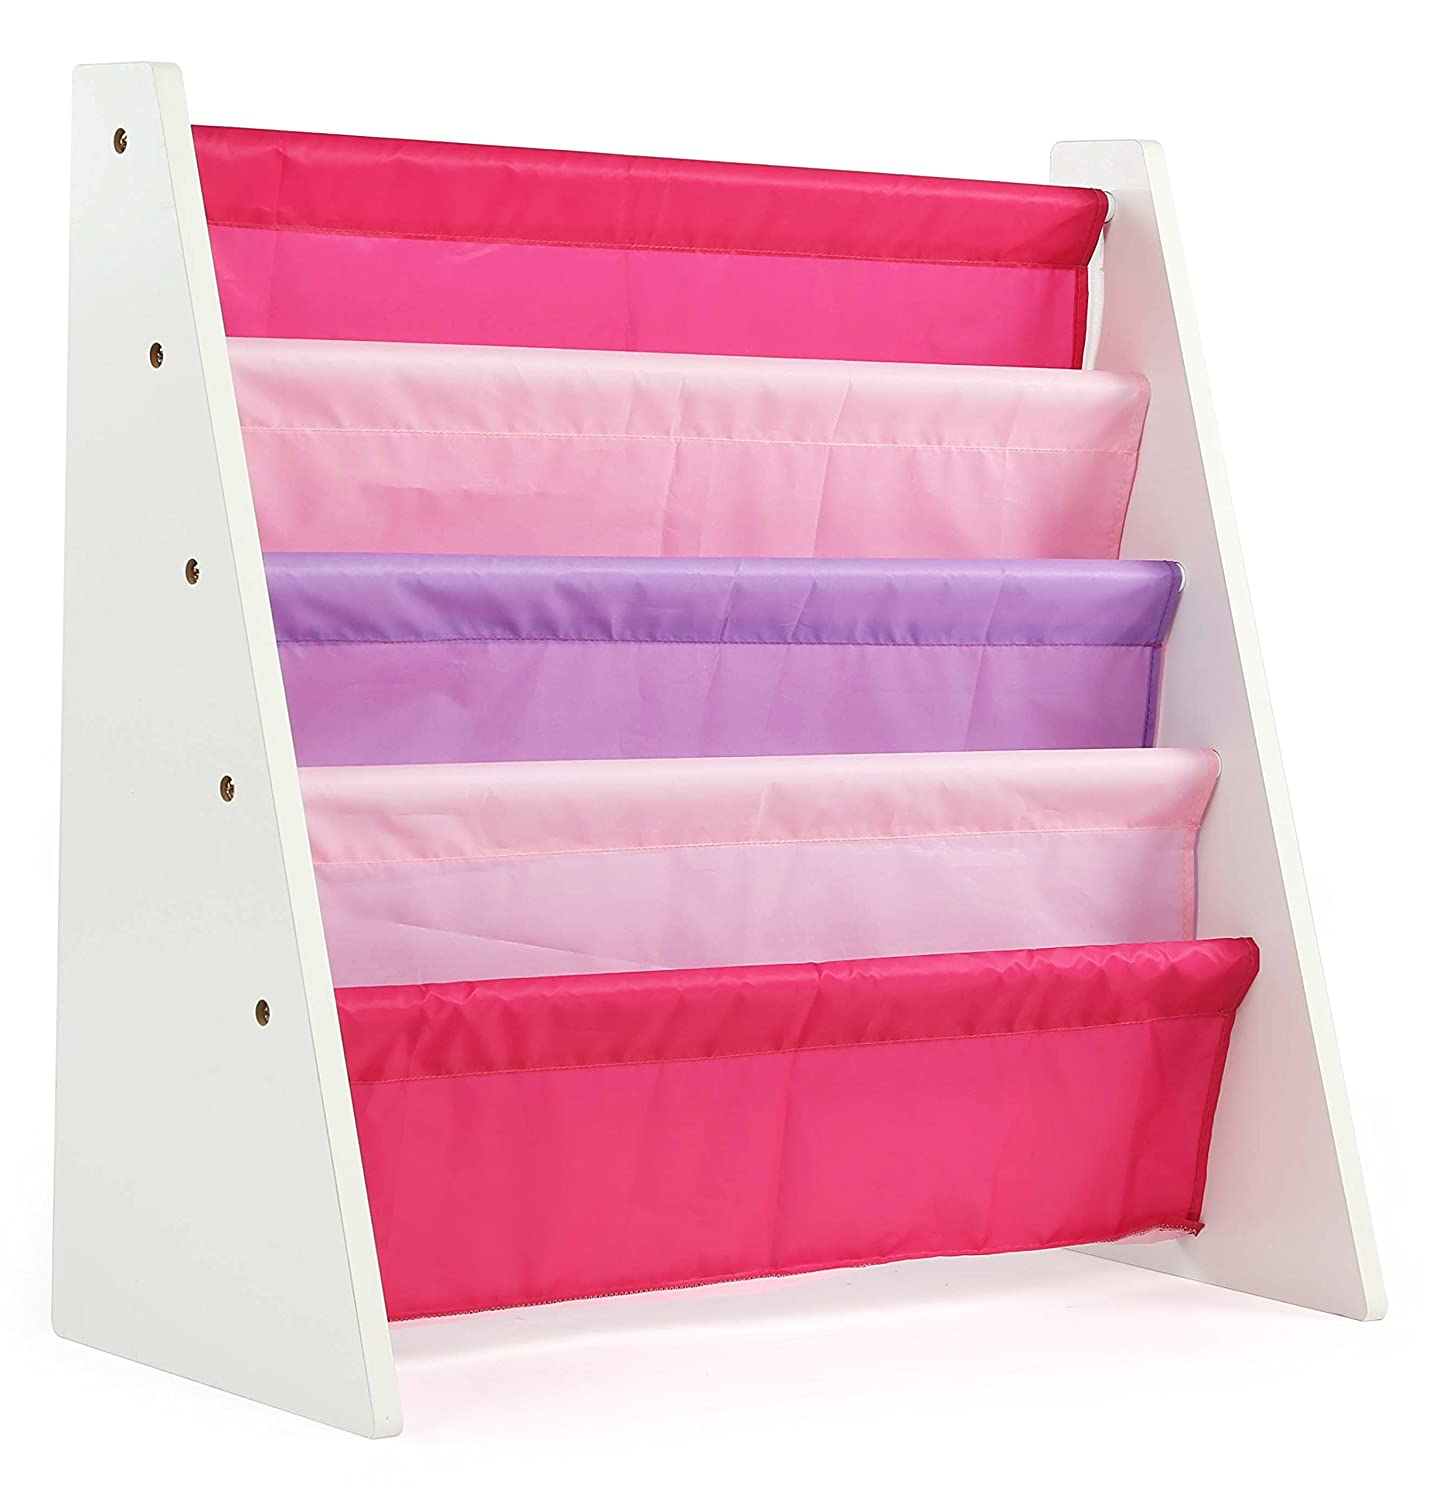 Stores Tot Tutors, Inc. WO697 Tot Tutors Kids Book Rack Storage Bookshelf, White/Pink & Purple (Friends Collection), Pink&Purple